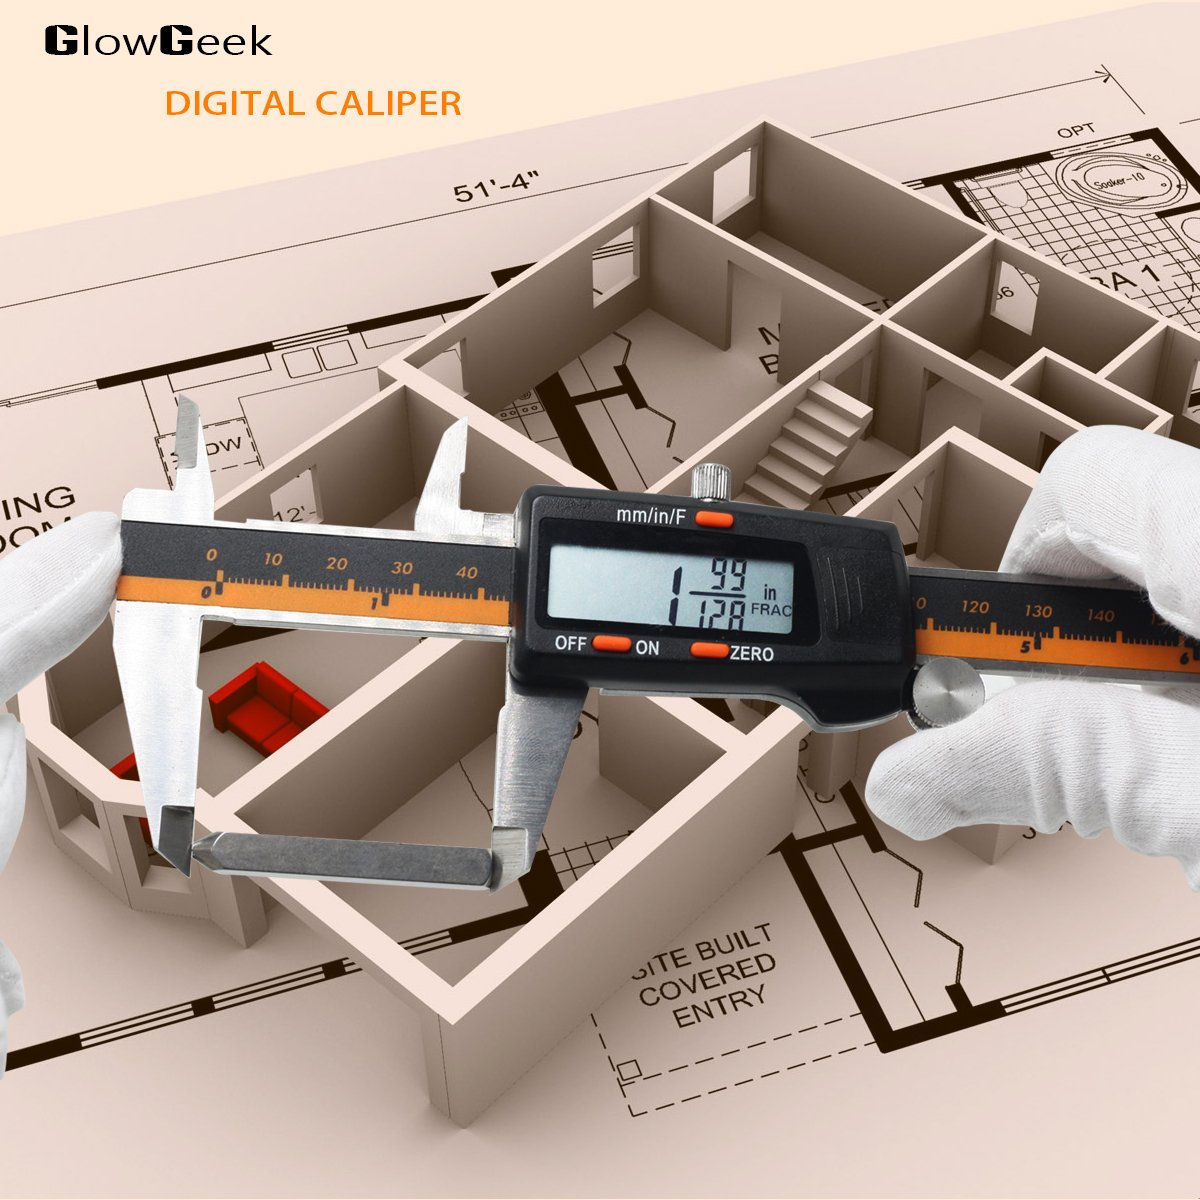 GlowGeek Electronic Digital Caliper Inch/Metric/Fractions Conversion 0-6 Inch/150 mm Stainless Steel Body Orange/Black Extra Large LCD Screen Auto Off Featured Measuring Tool by GlowGeek (Image #4)